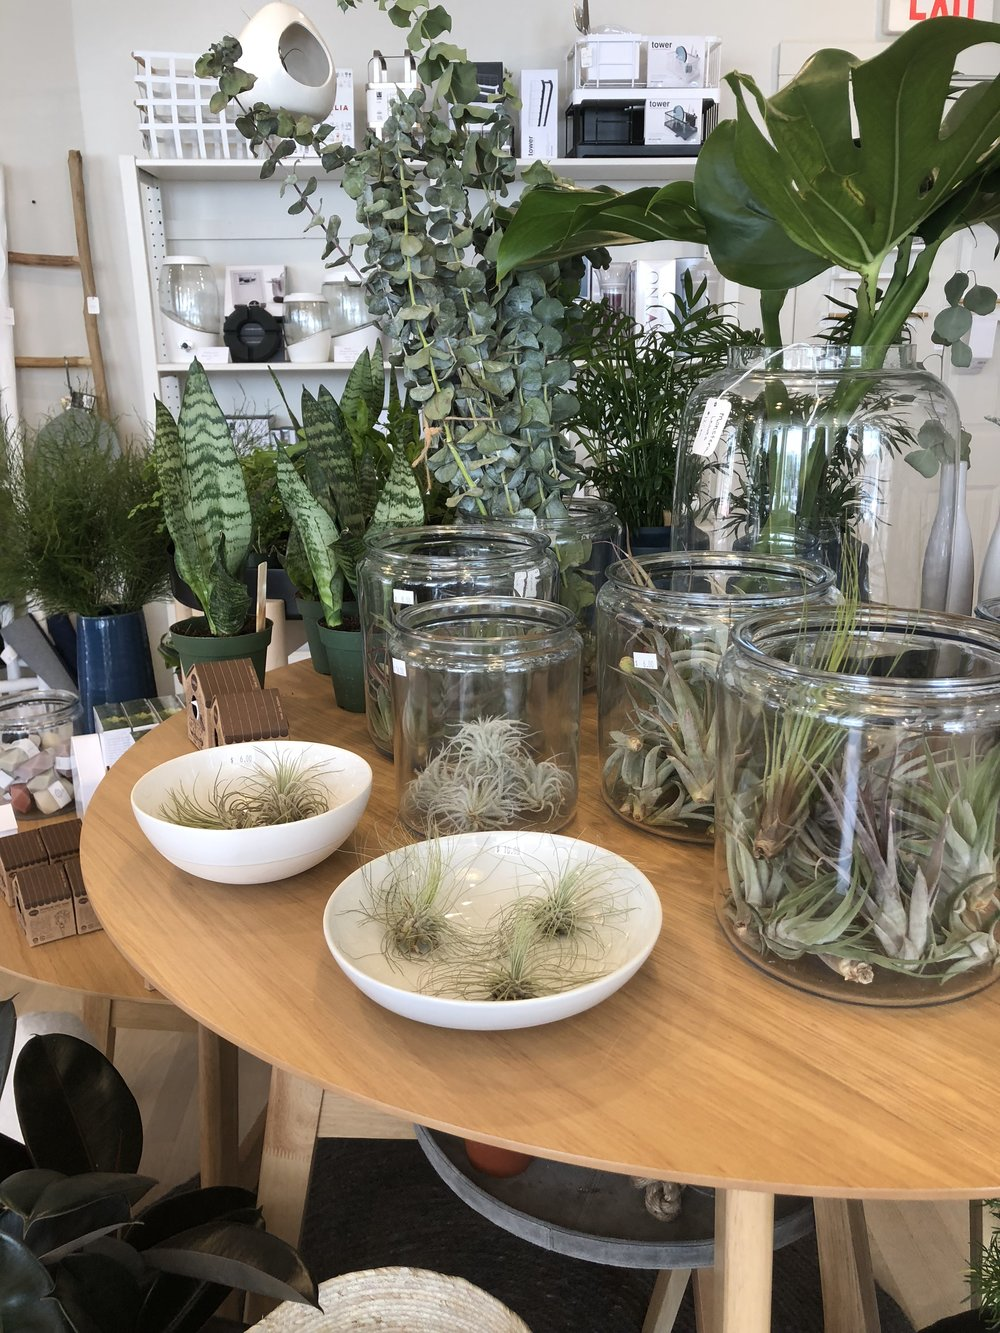 We also made a pit stop into  Oak + Moss  - a shop filled with plants, housewares and great gifts. I wanted to bring home every single plant with me!